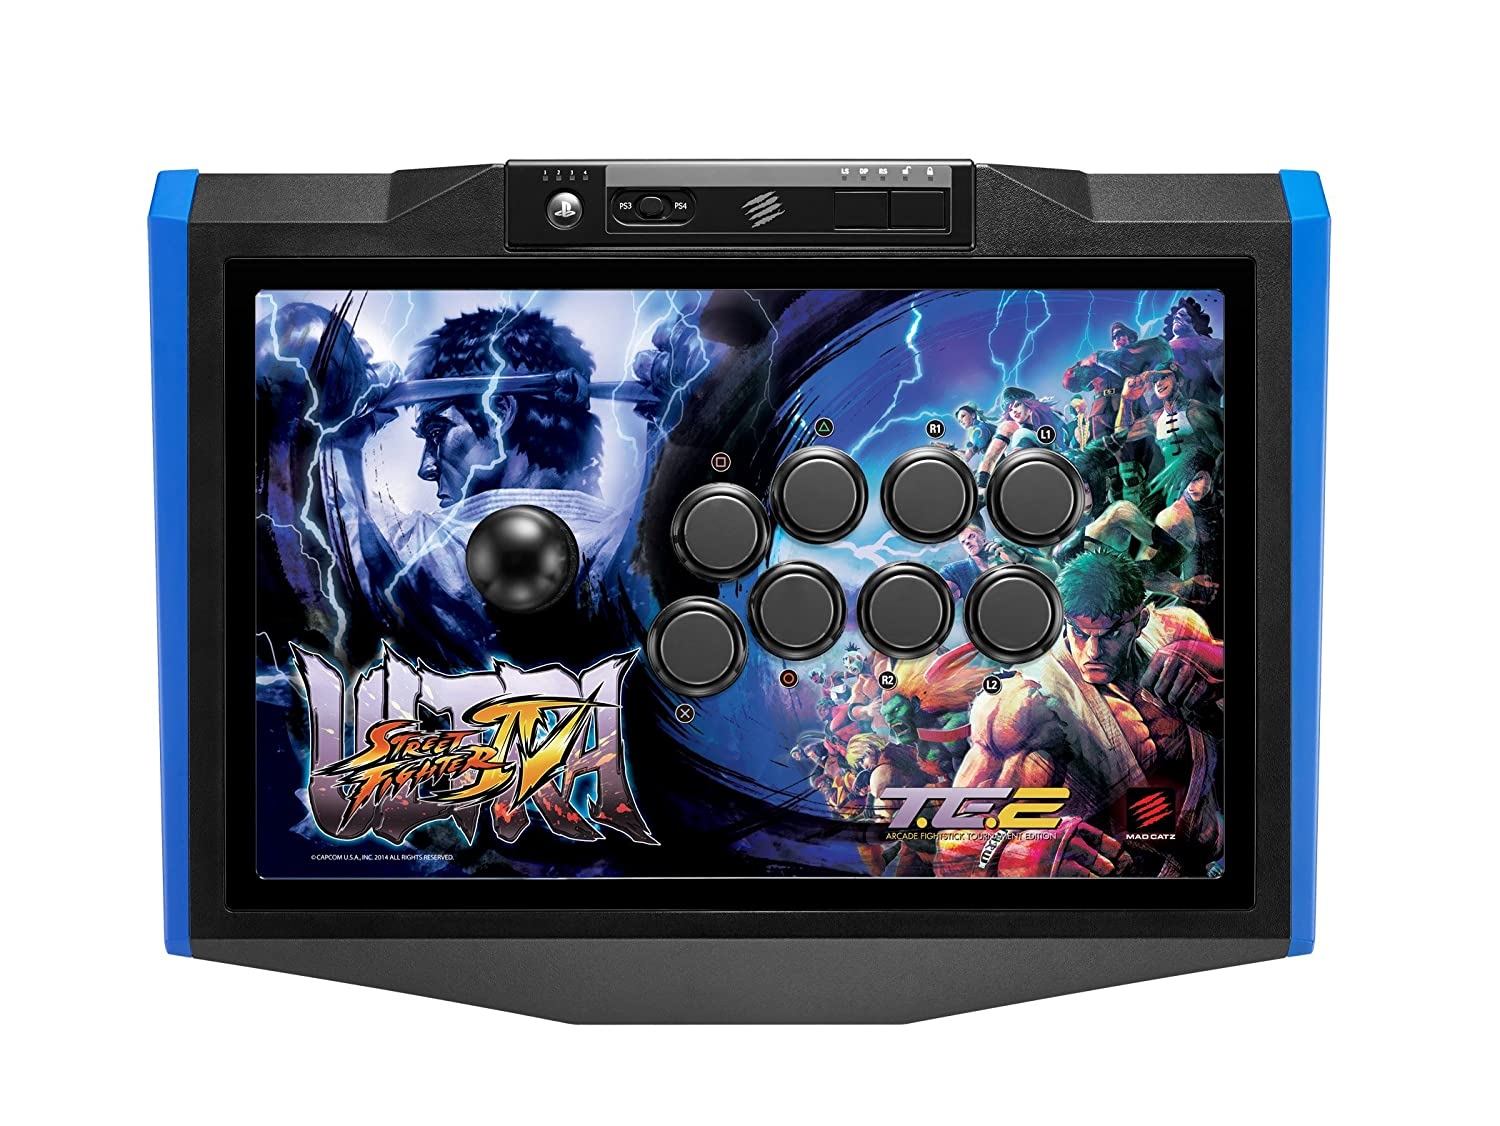 Best Fight Pads And Arcade Sticks For Mortal Kombat X On